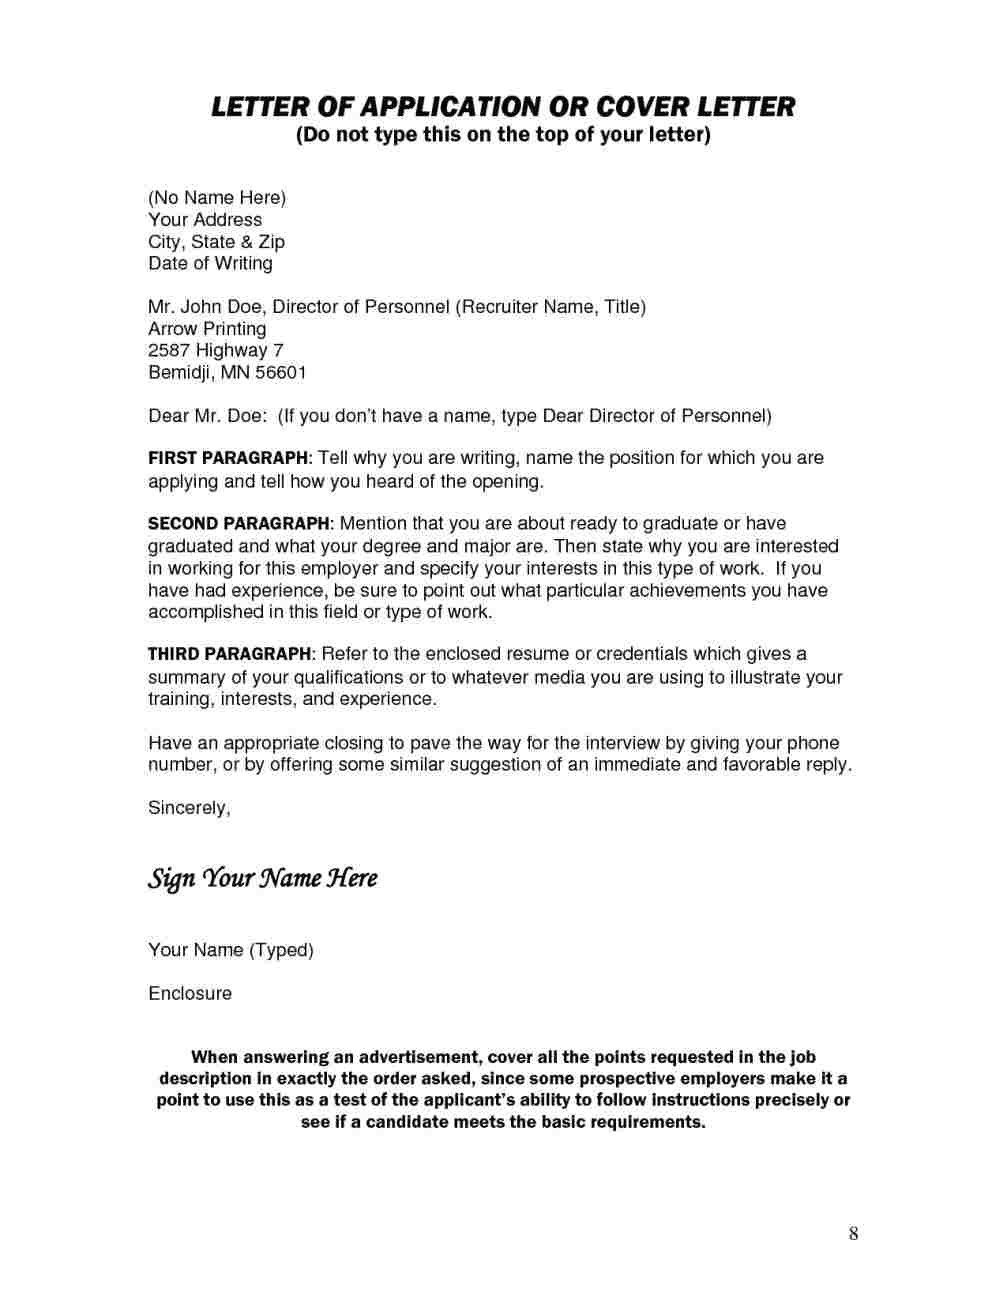 how to title cover letter with no name